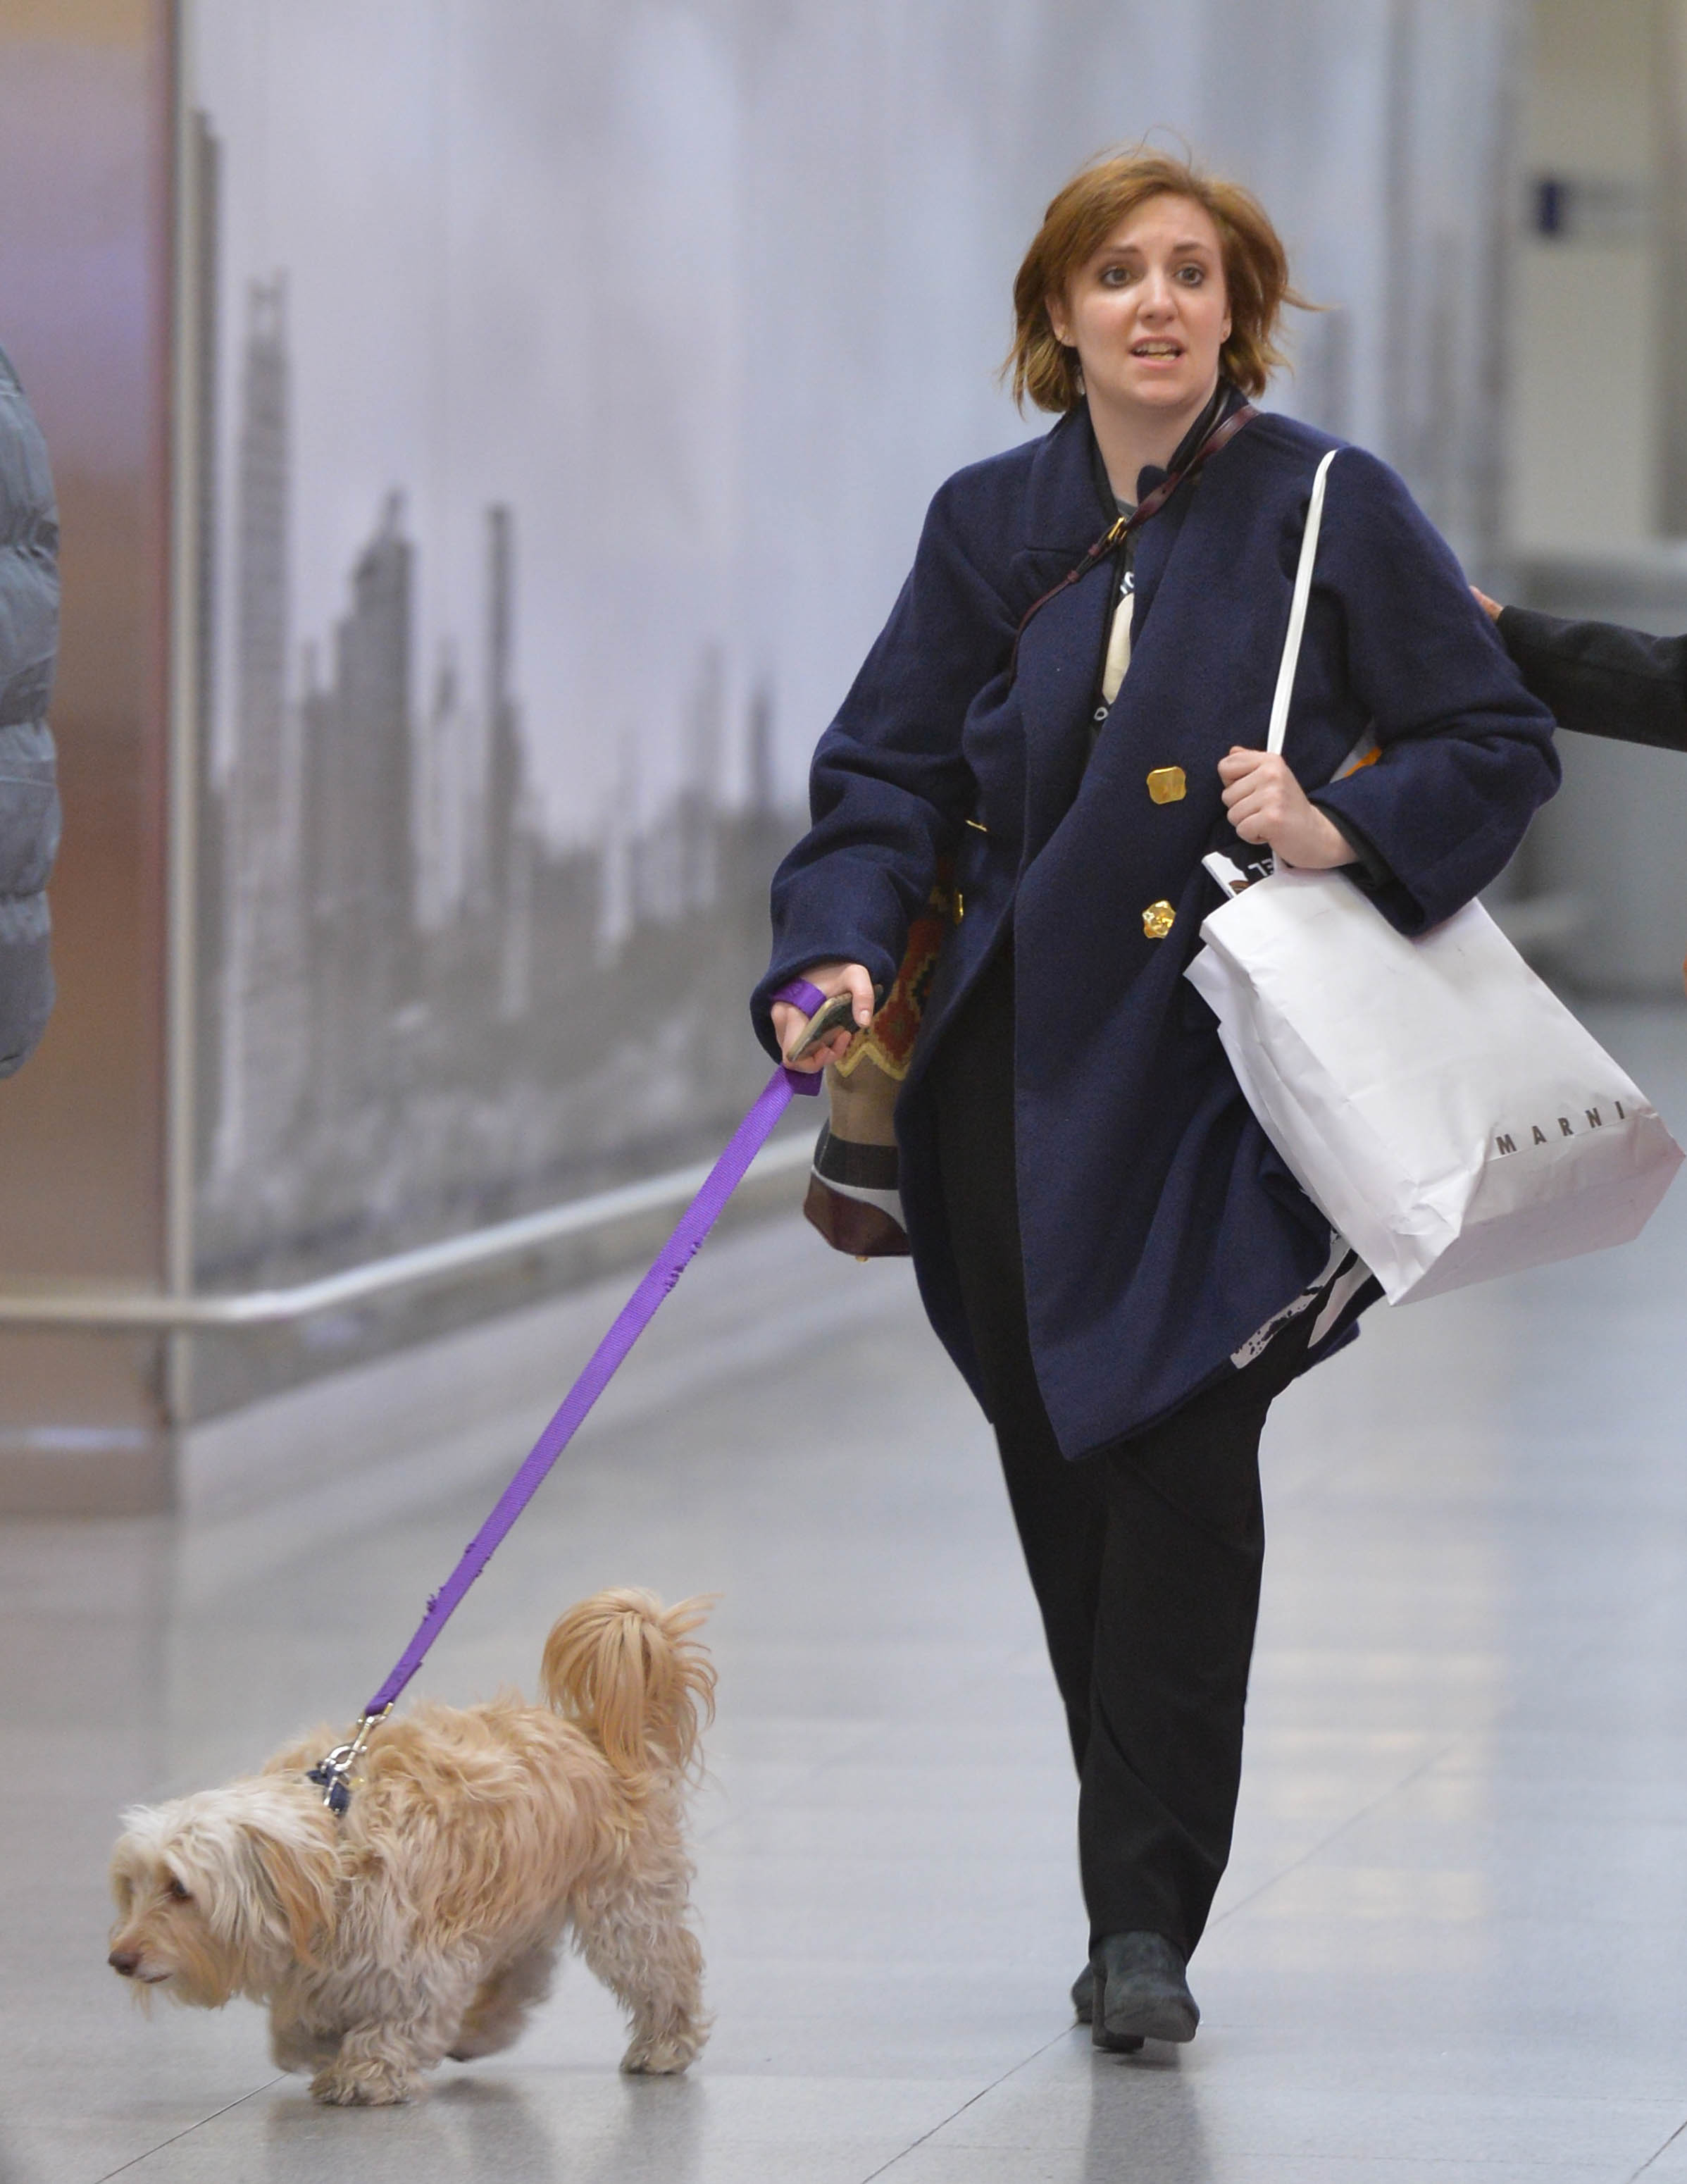 Lena Dunham seen at JFK on March 15, 2015 in New York City.